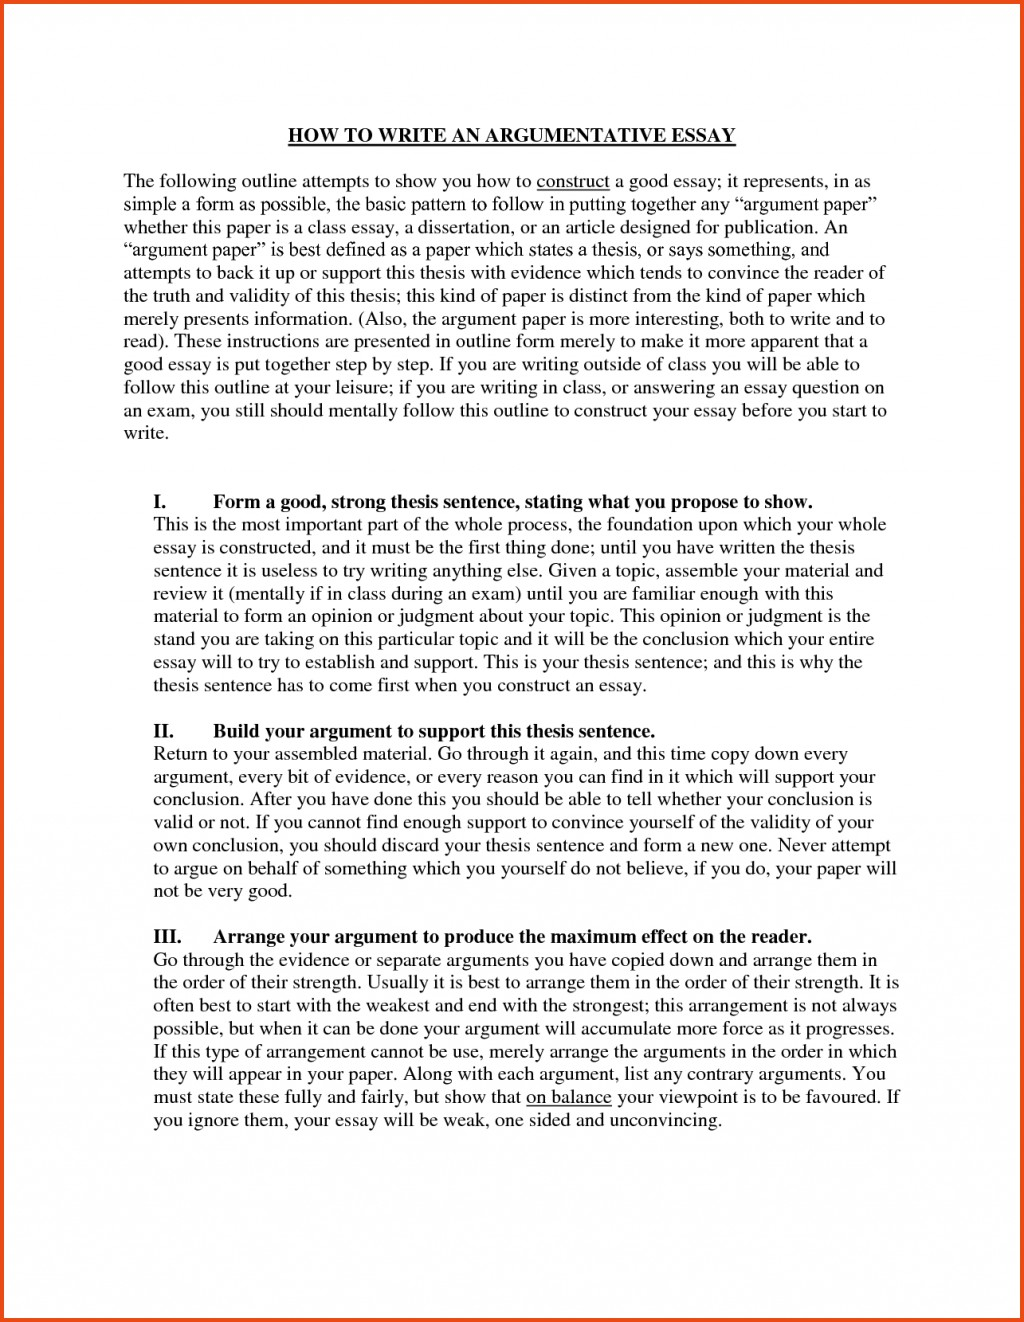 004 How To Start Good Essay Example Brilliant Ideas Of Ways An Aboutelf Dissertation Nice Photo Awesome A Paper For College Introduction Biography About Yourself Large